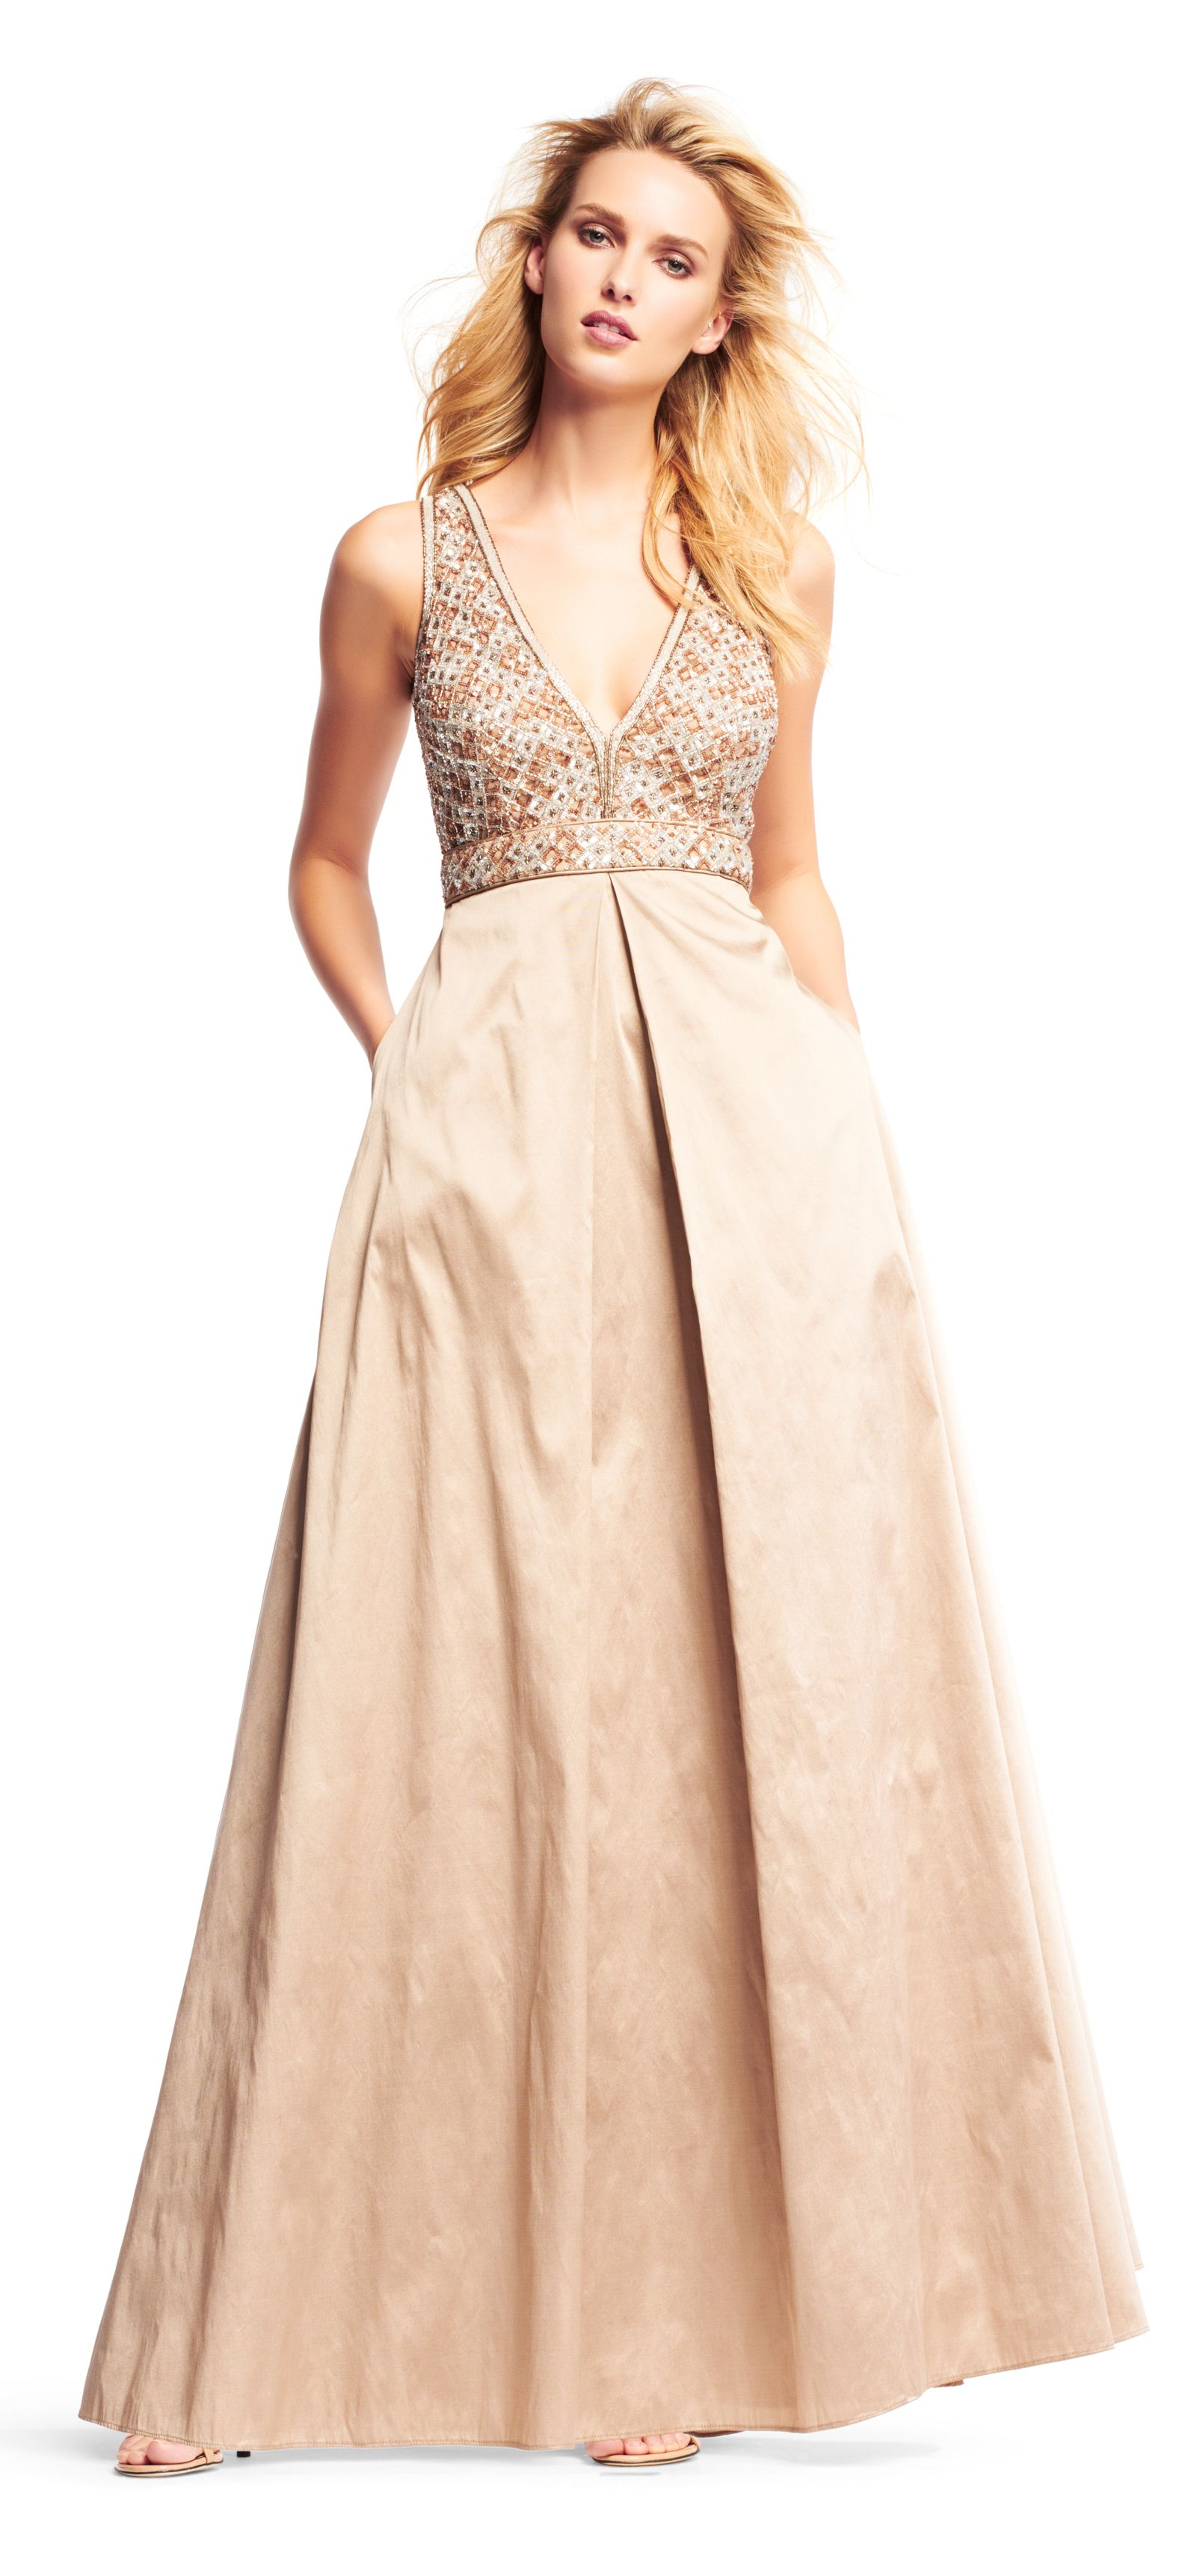 1ecd3edb24 A beaded mesh bodice is the centerpiece of this gorgeous ball gown. This formal  dress features a sleeveless deep v-neck neckline